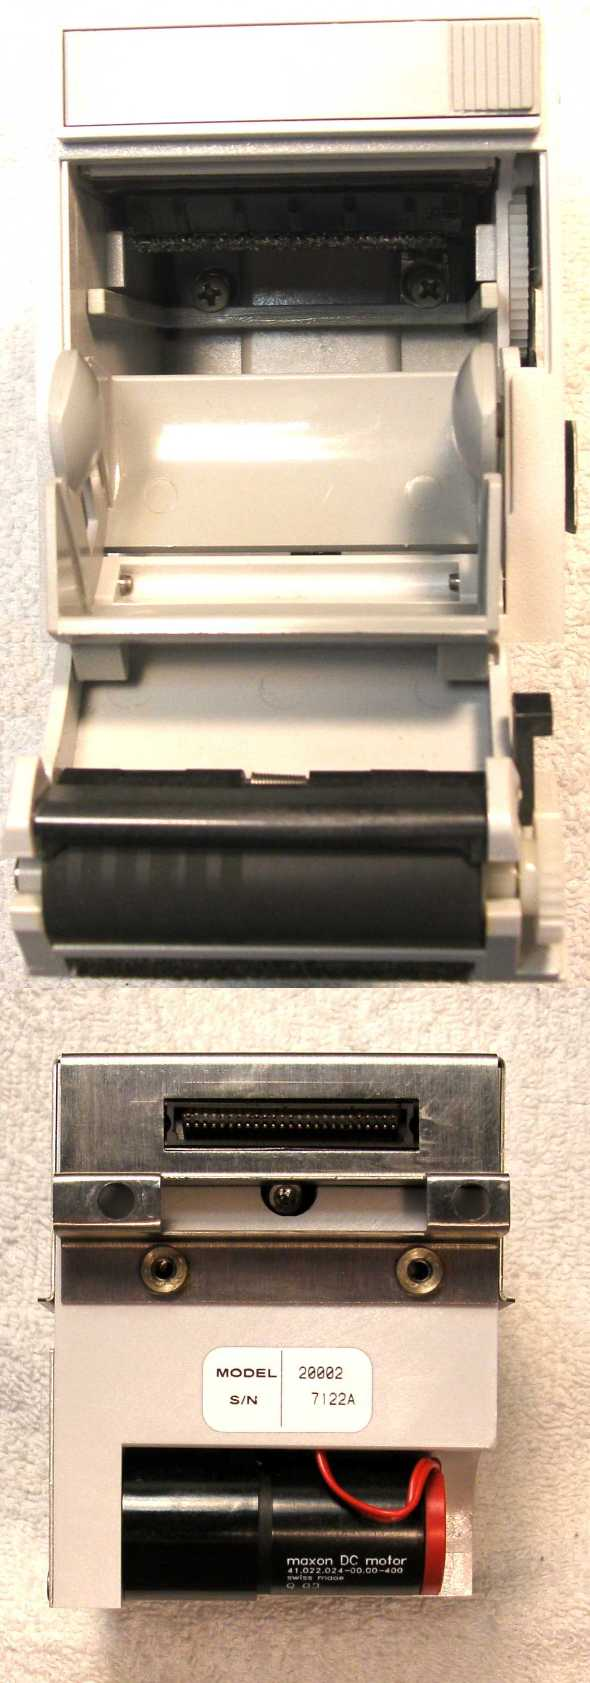 MDE Escort Prism SE mod 20414-103 thermal printer